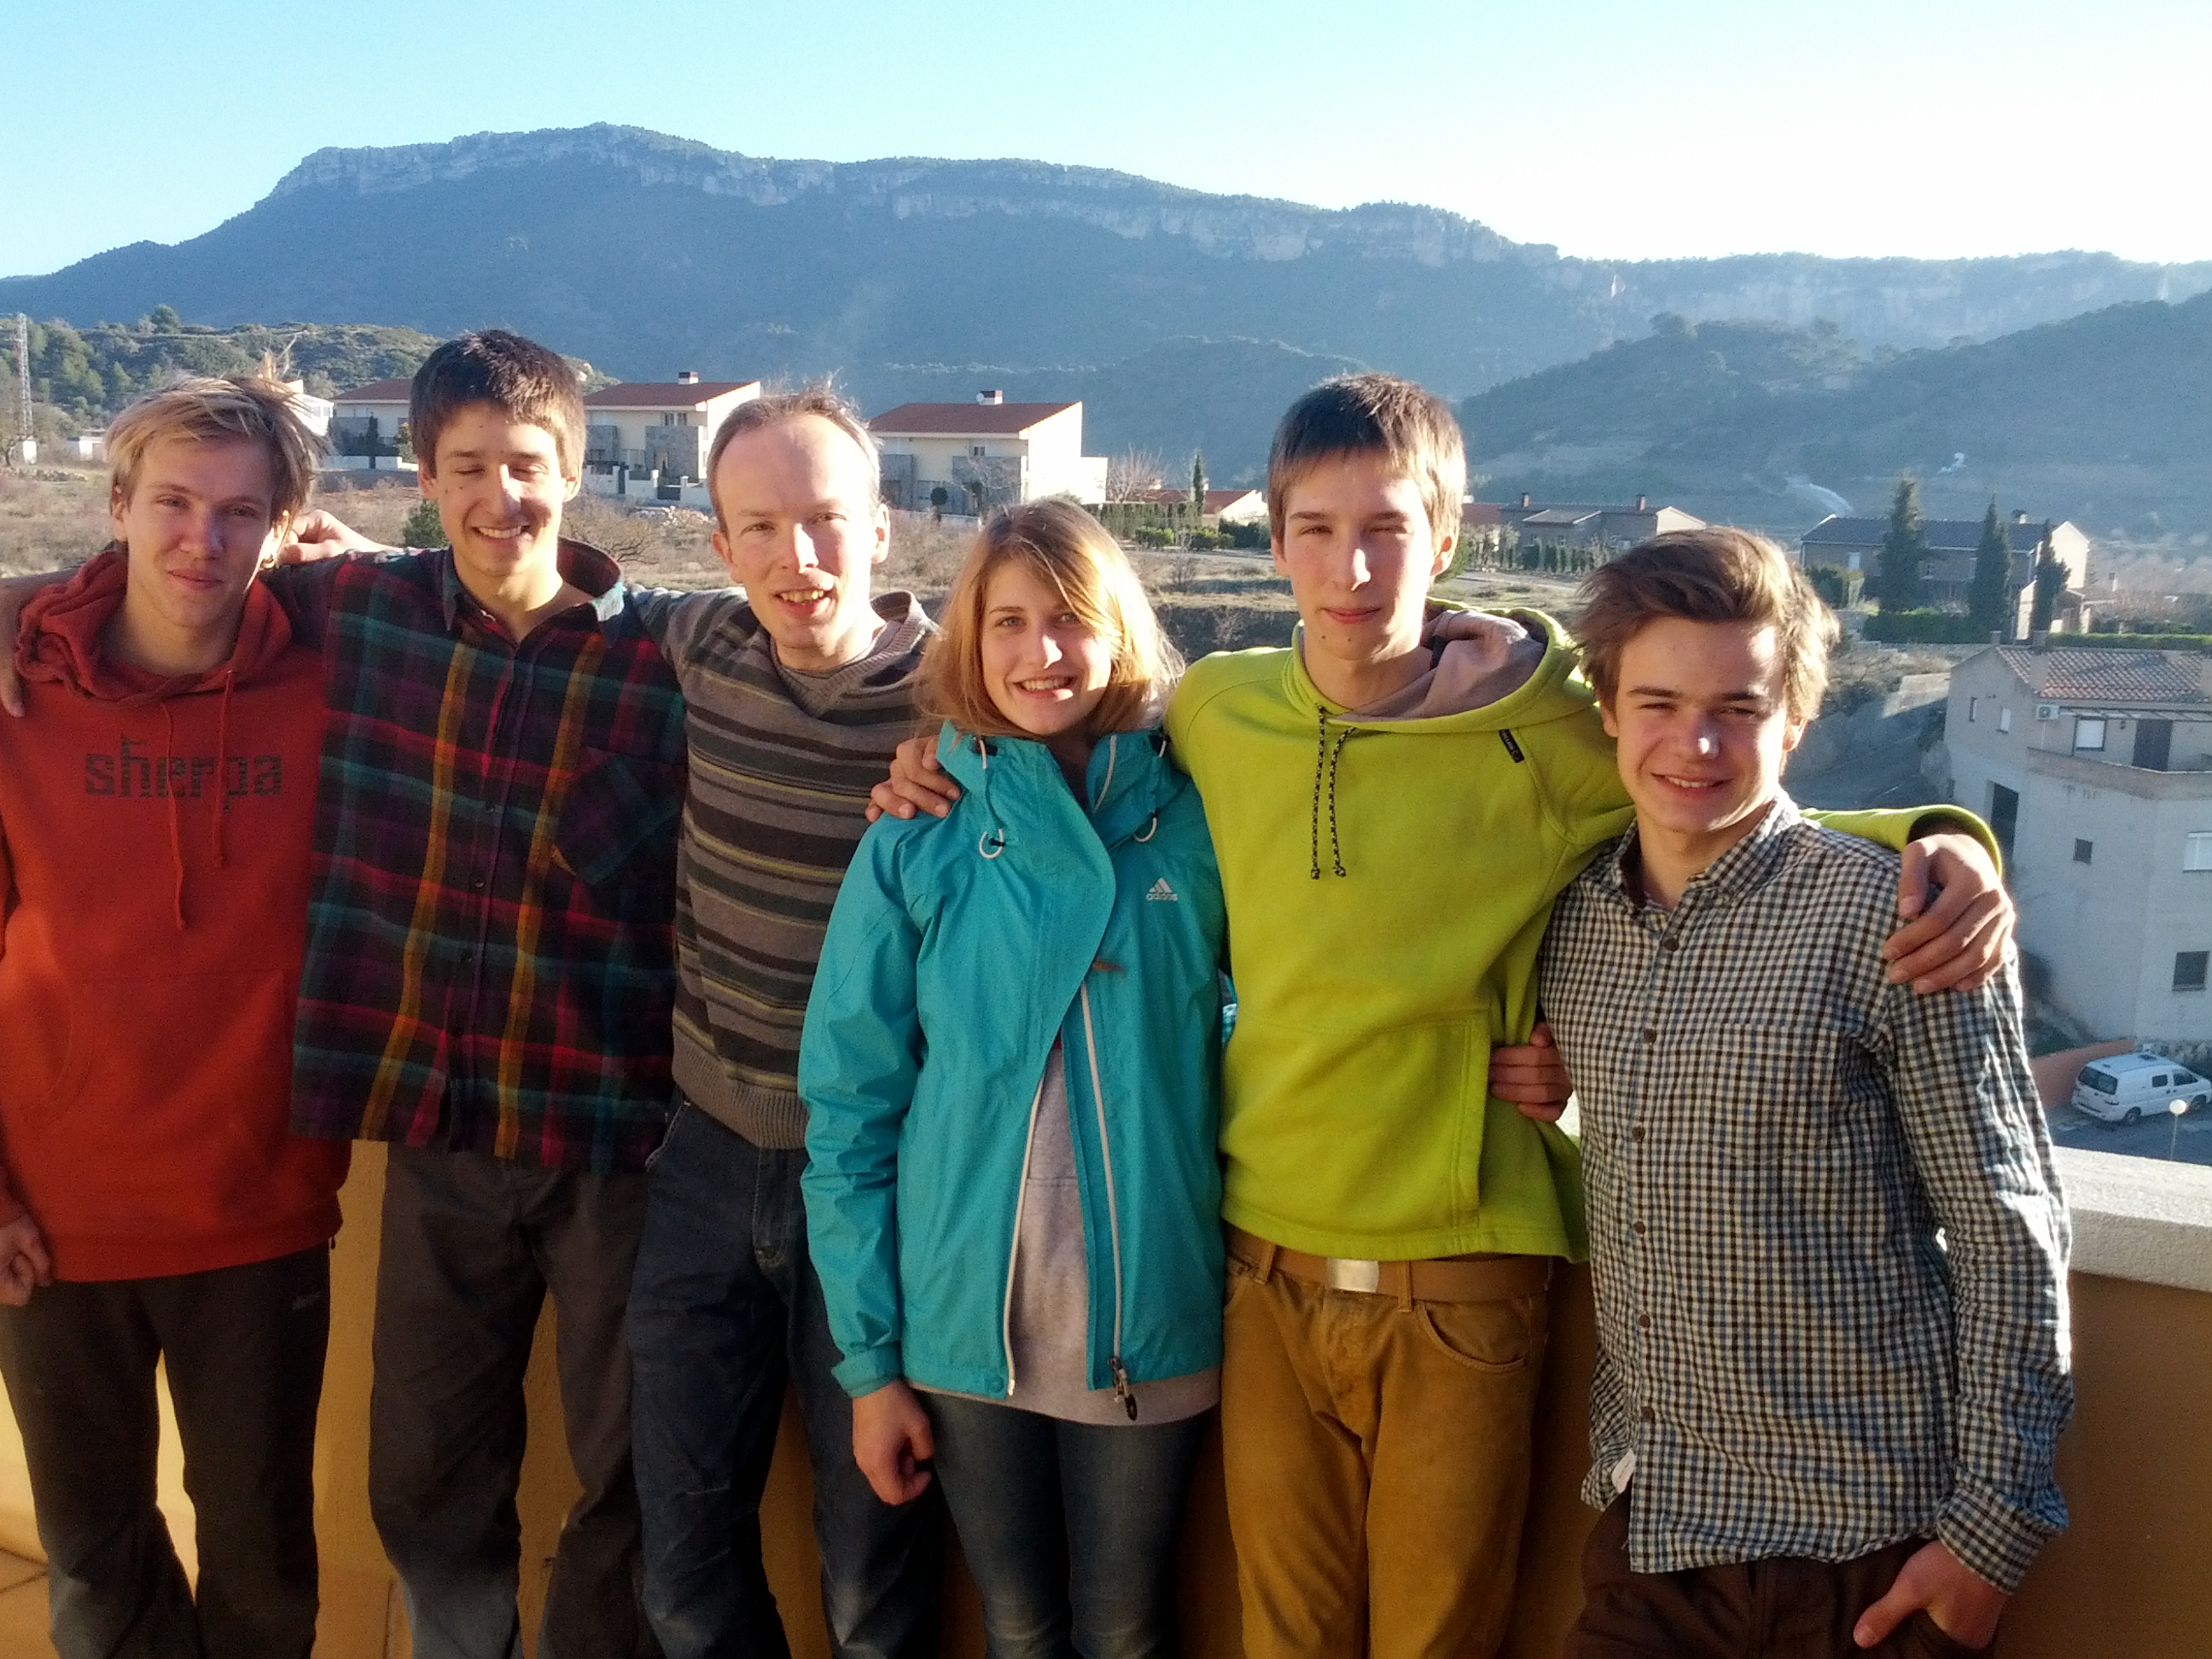 Ed,David,Ted,Irina,Ruben and Jakob in front of Siurana rocks (left to right)